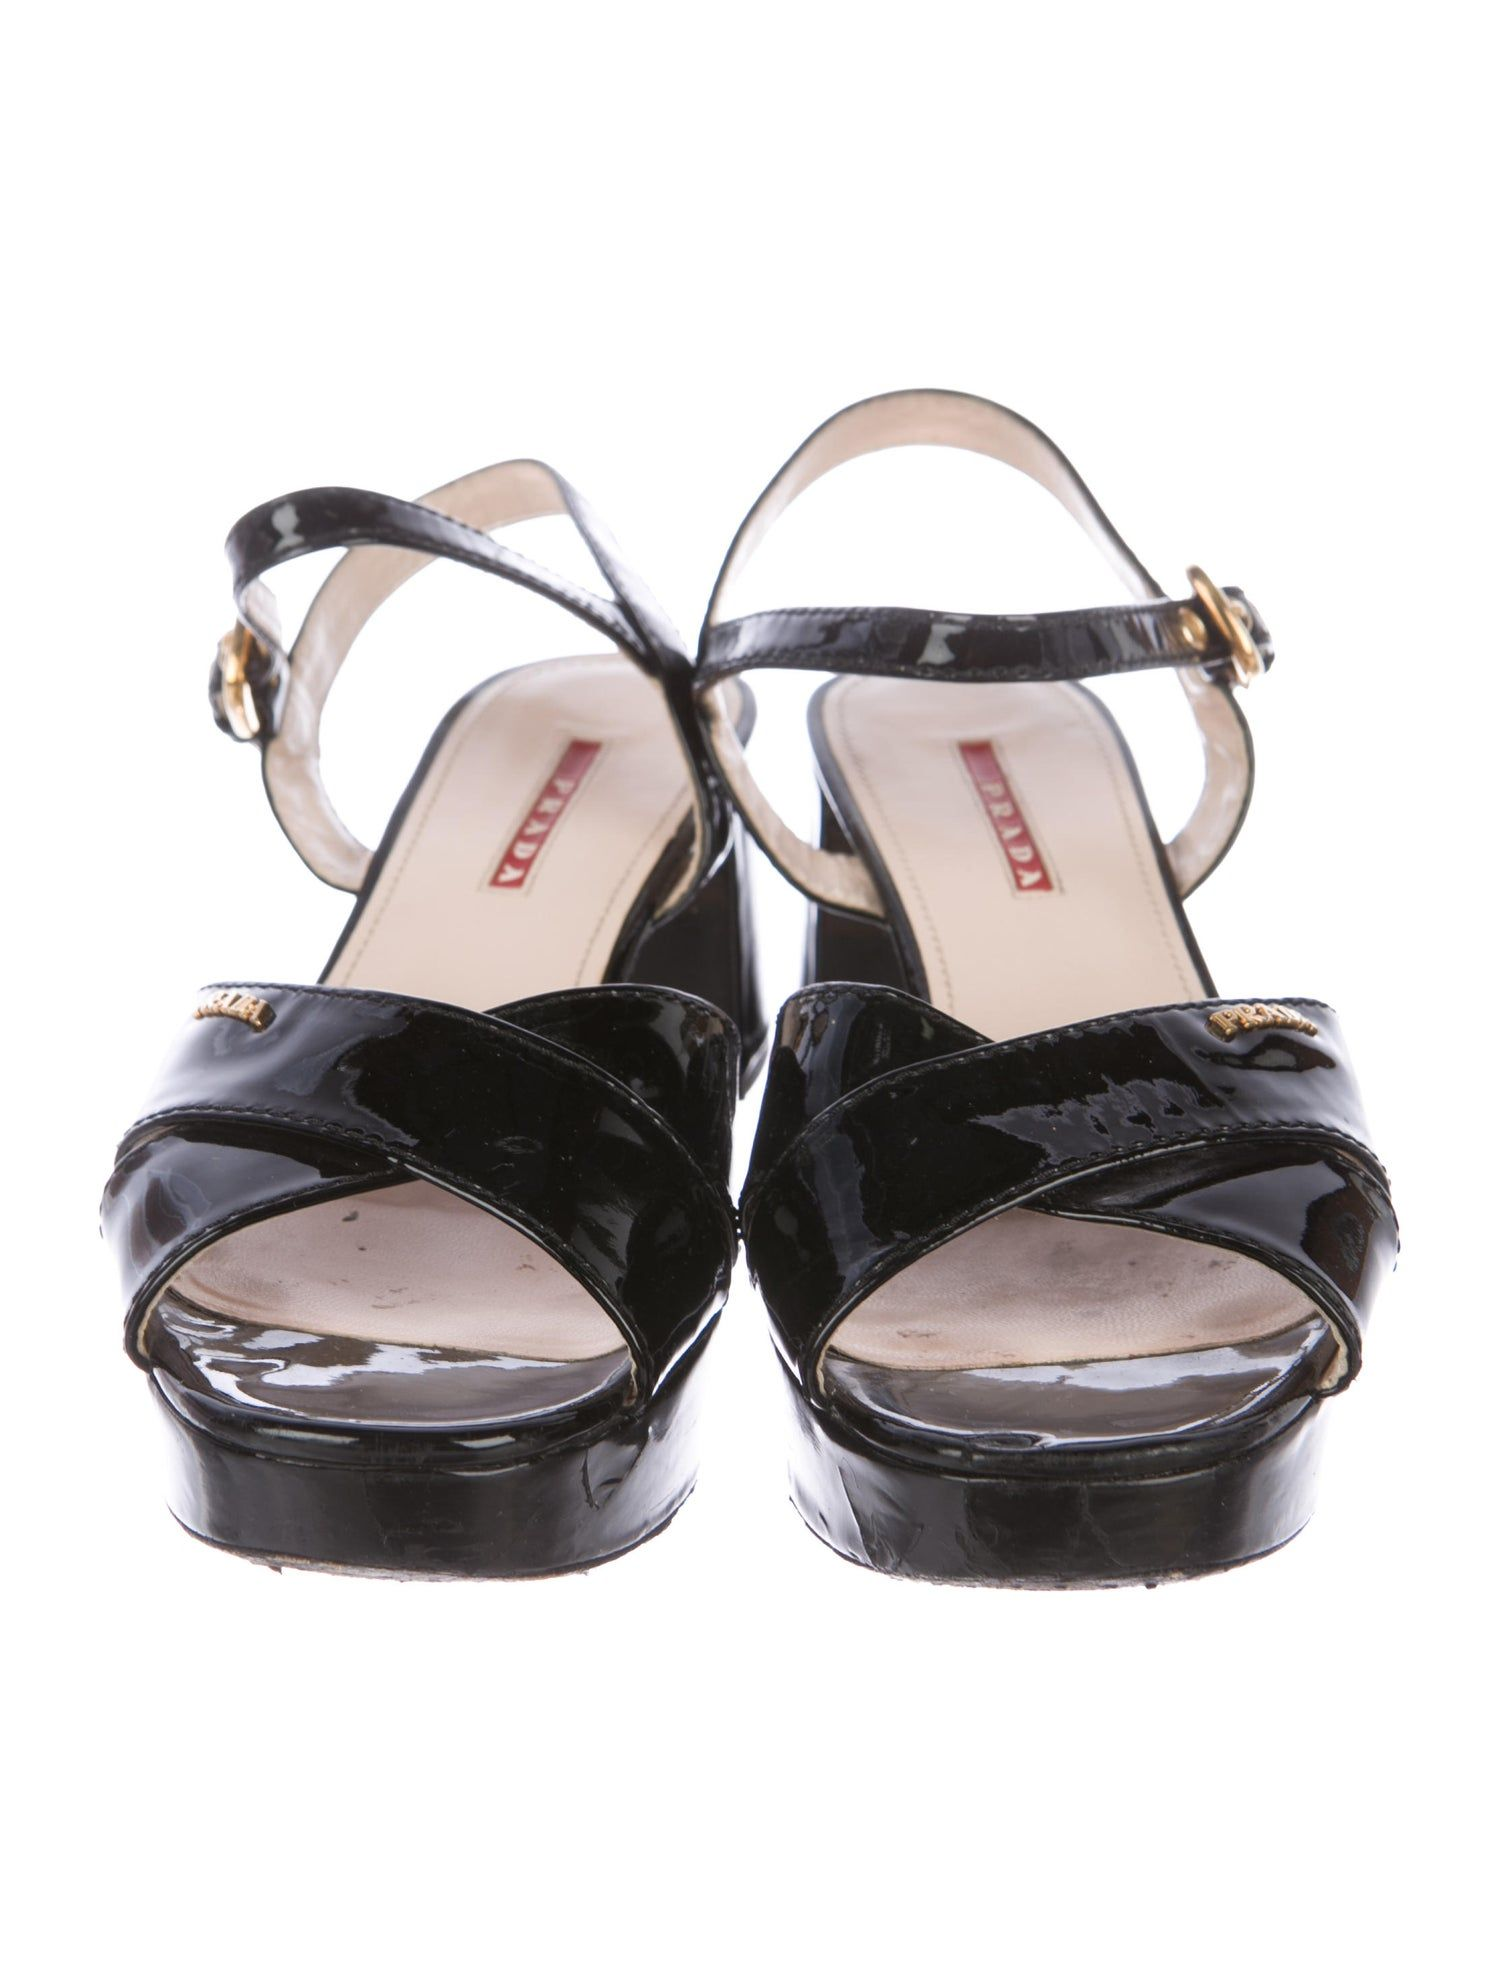 Patent Leather Platform Sandals With Images Platform Sandals Leather Platform Sandals Patent Leather